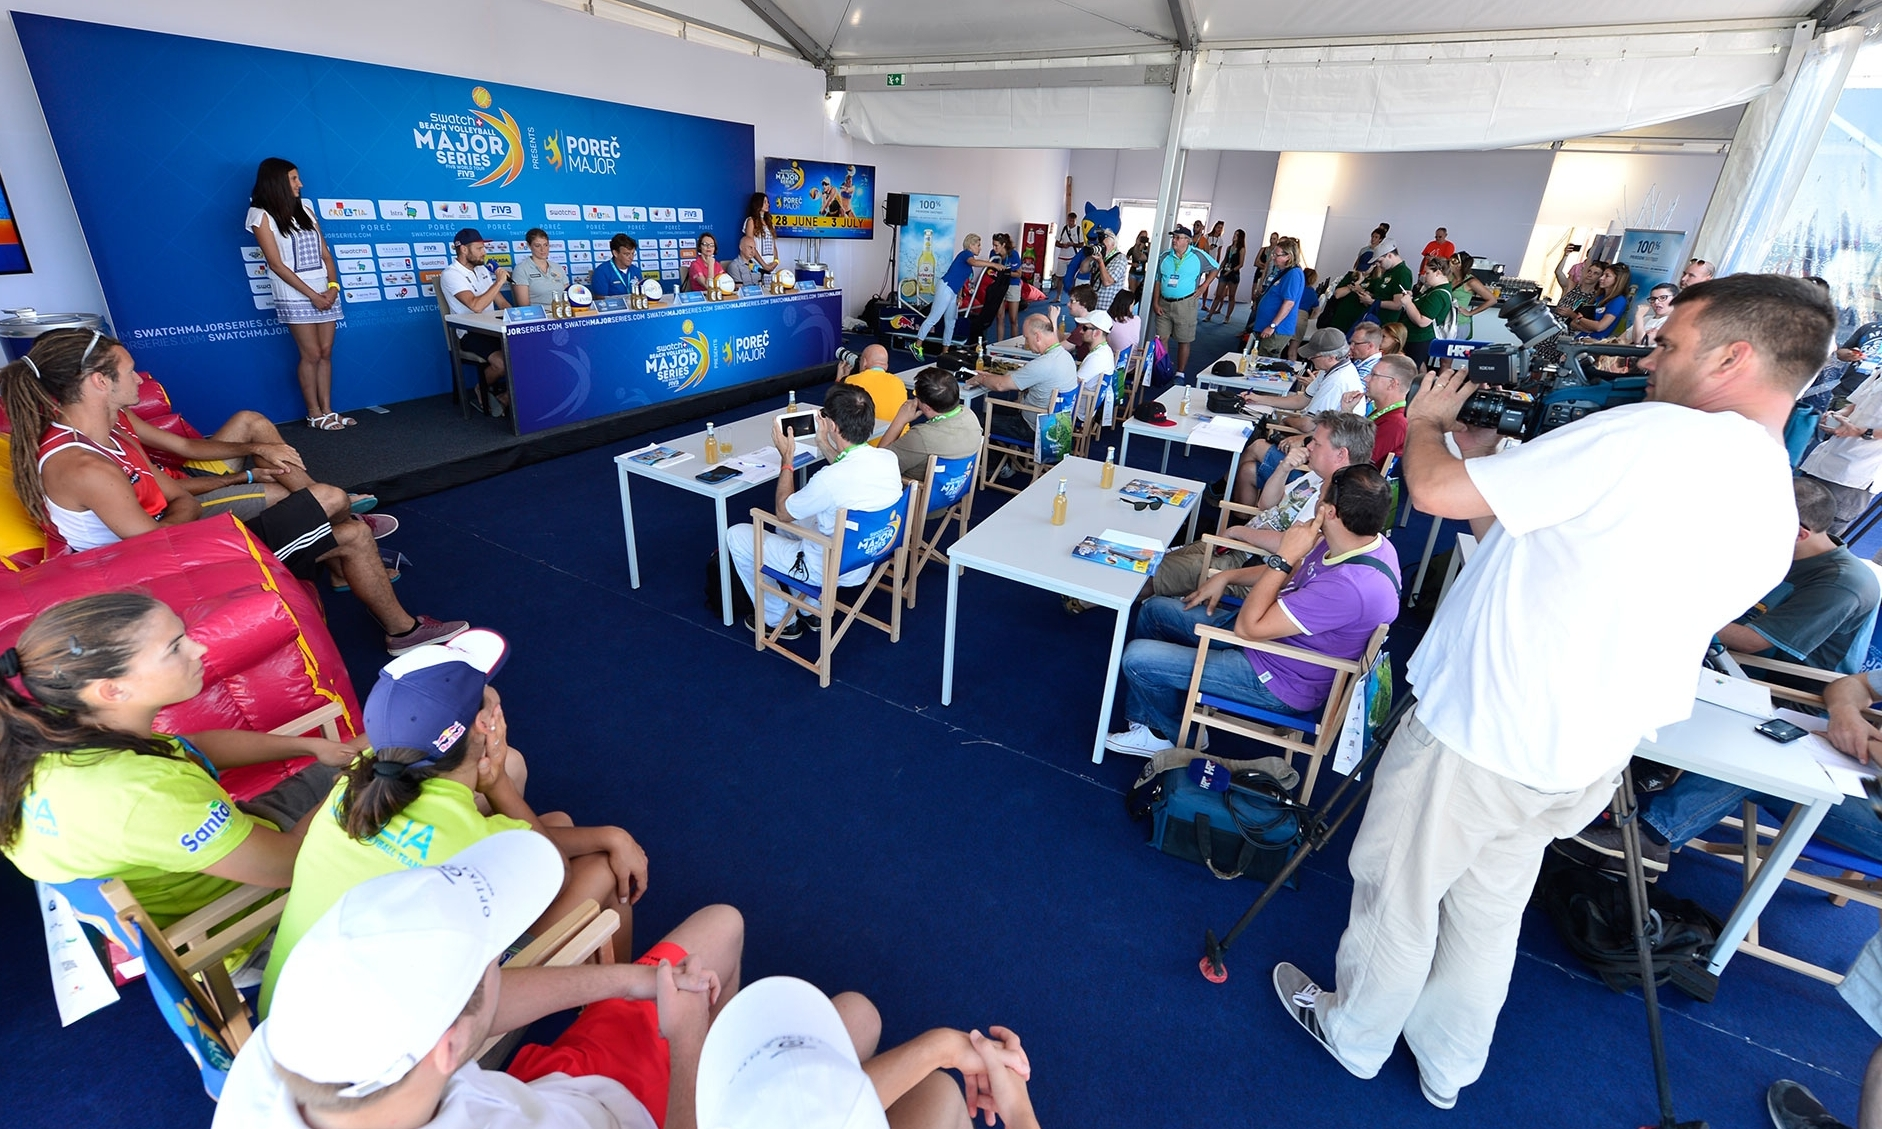 A packed press conference opened the Poreč Major. Photocredit: Bernhard Horst.